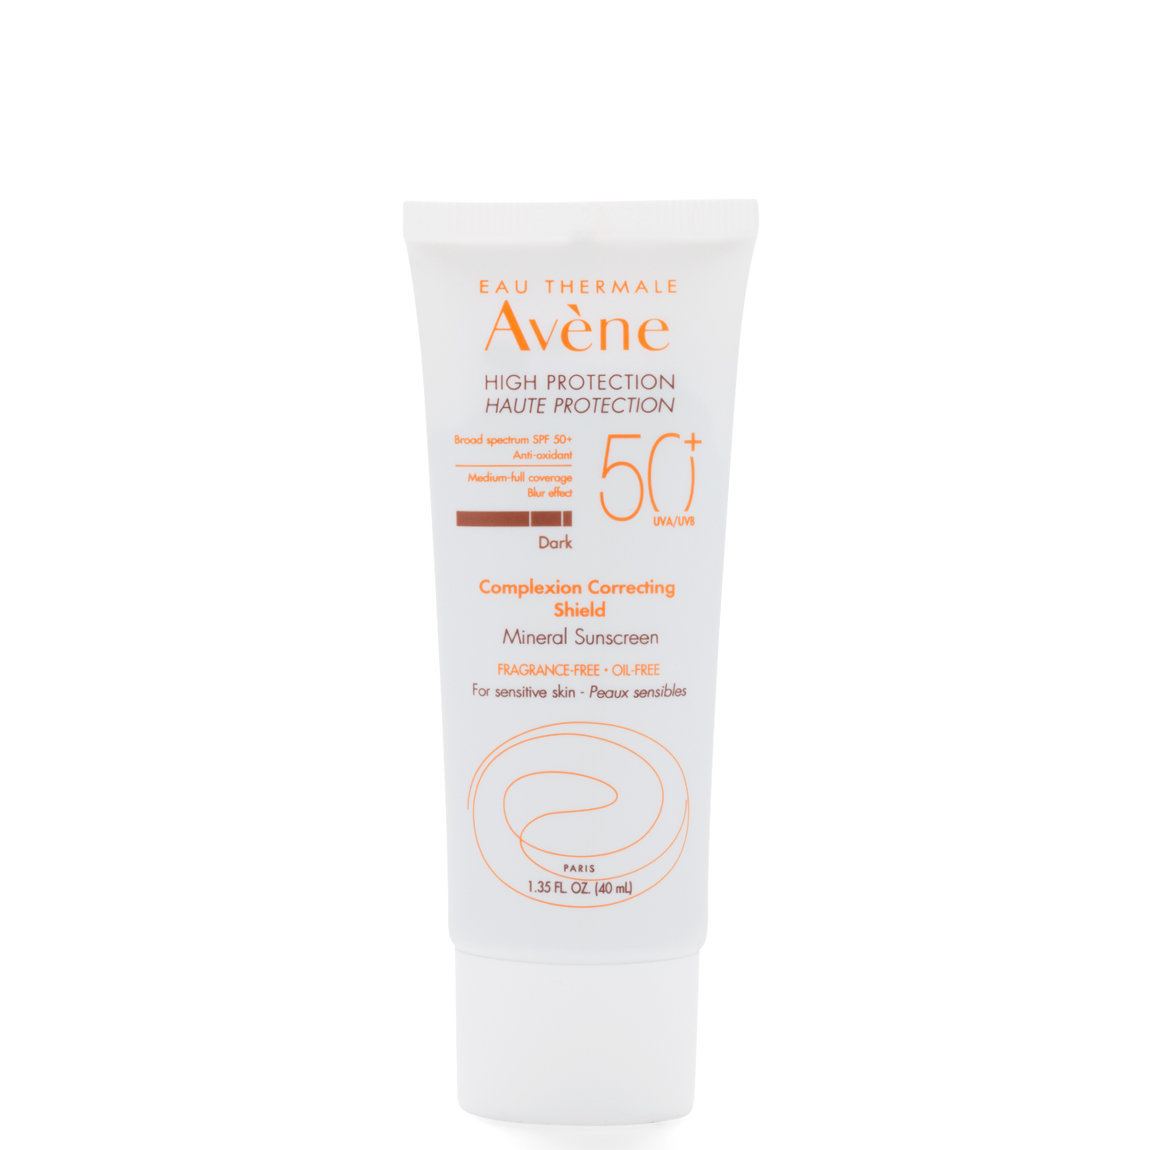 Eau Thermale Avène Mineral Complexion Correcting Shield SPF 50+ Dark product swatch.